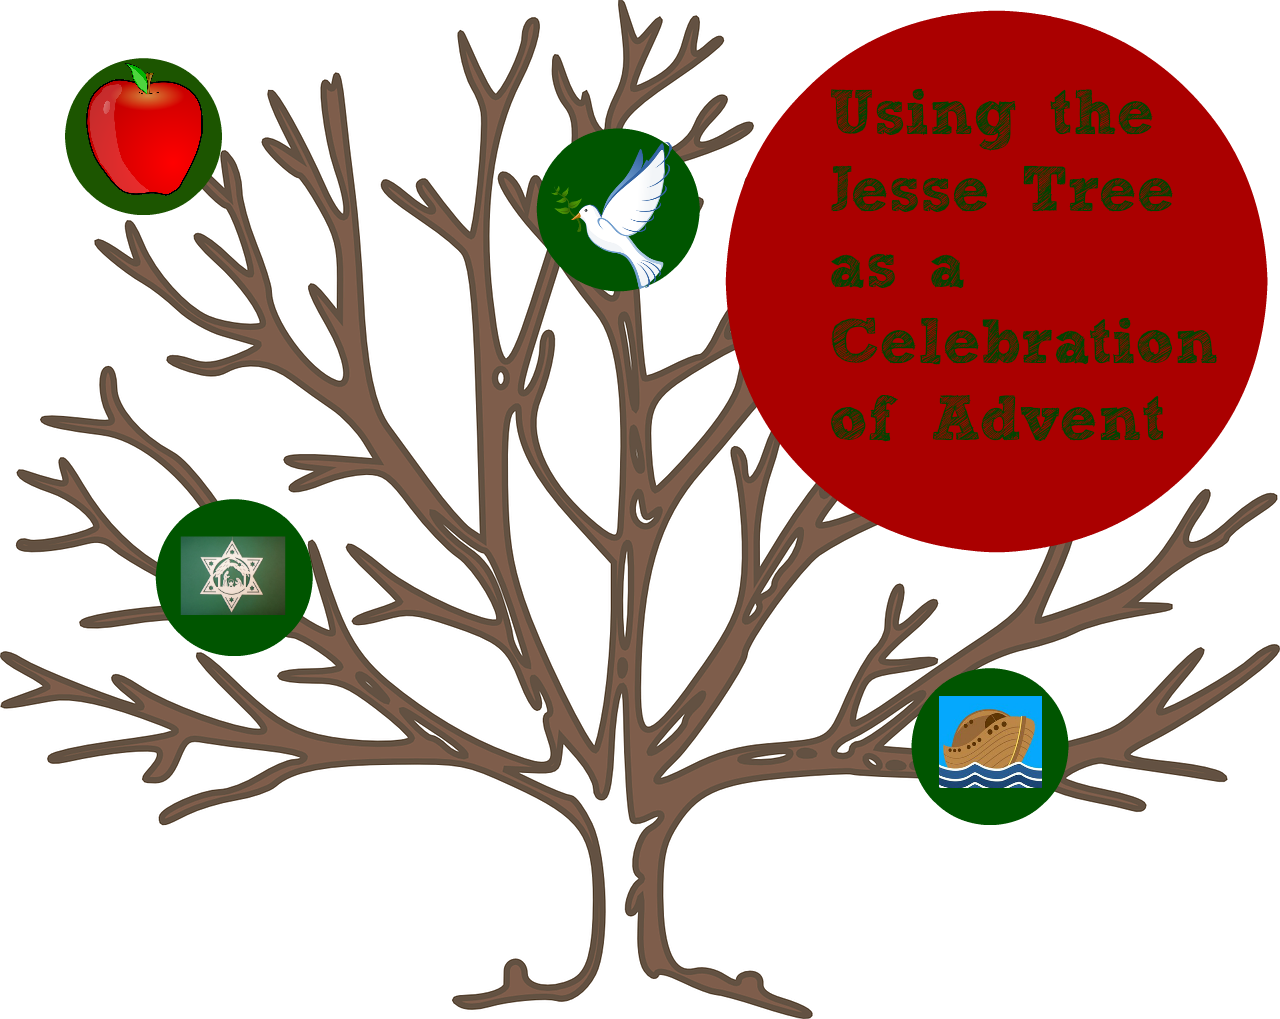 Using The Jesse Tree As A Celebration Of Advent